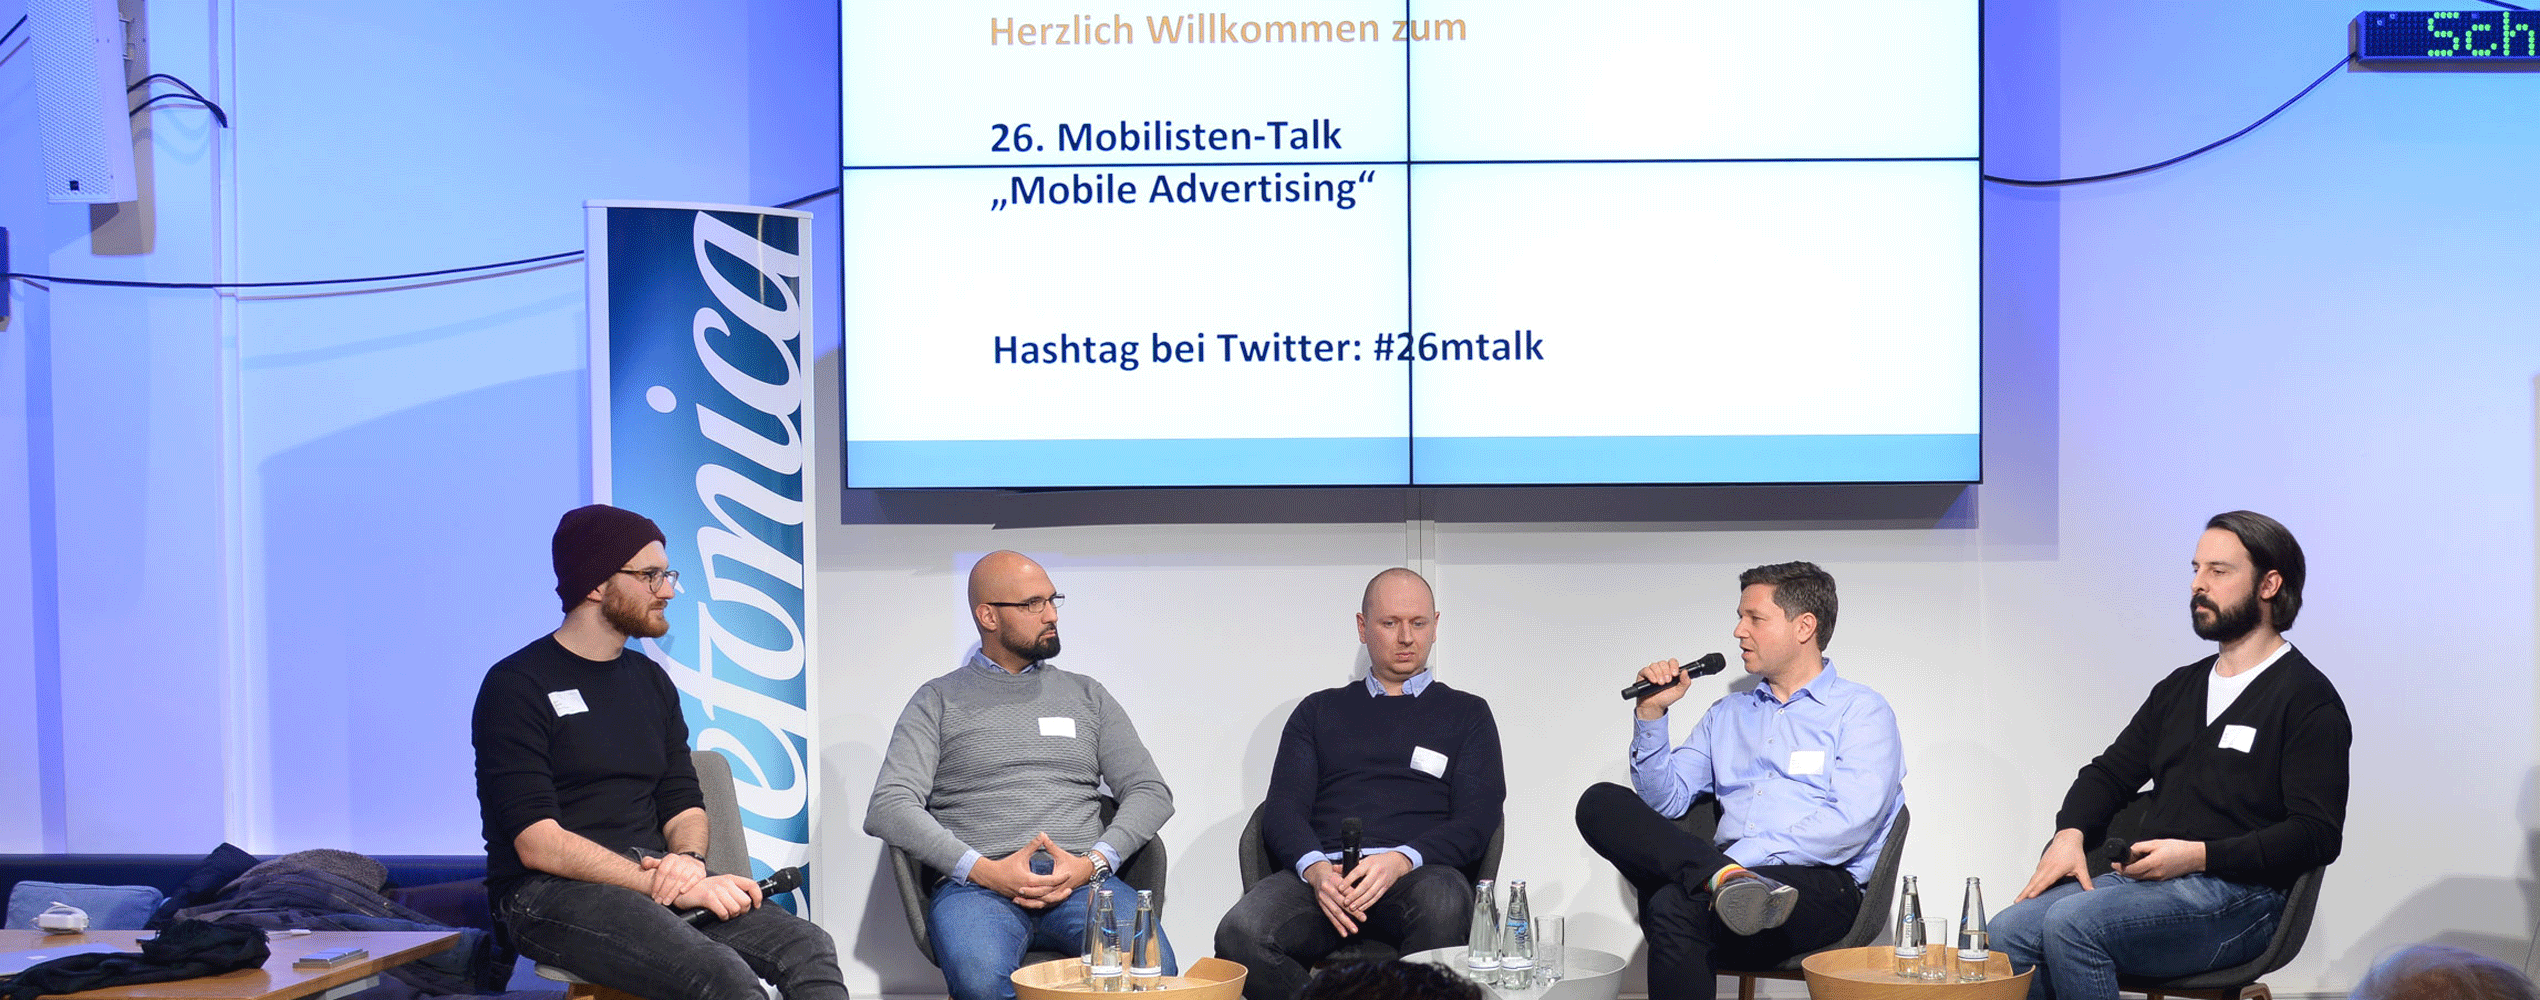 HEADER-26-Mobilisten-Talk_15022018_Mobile-Advertising_0307-2540x1000